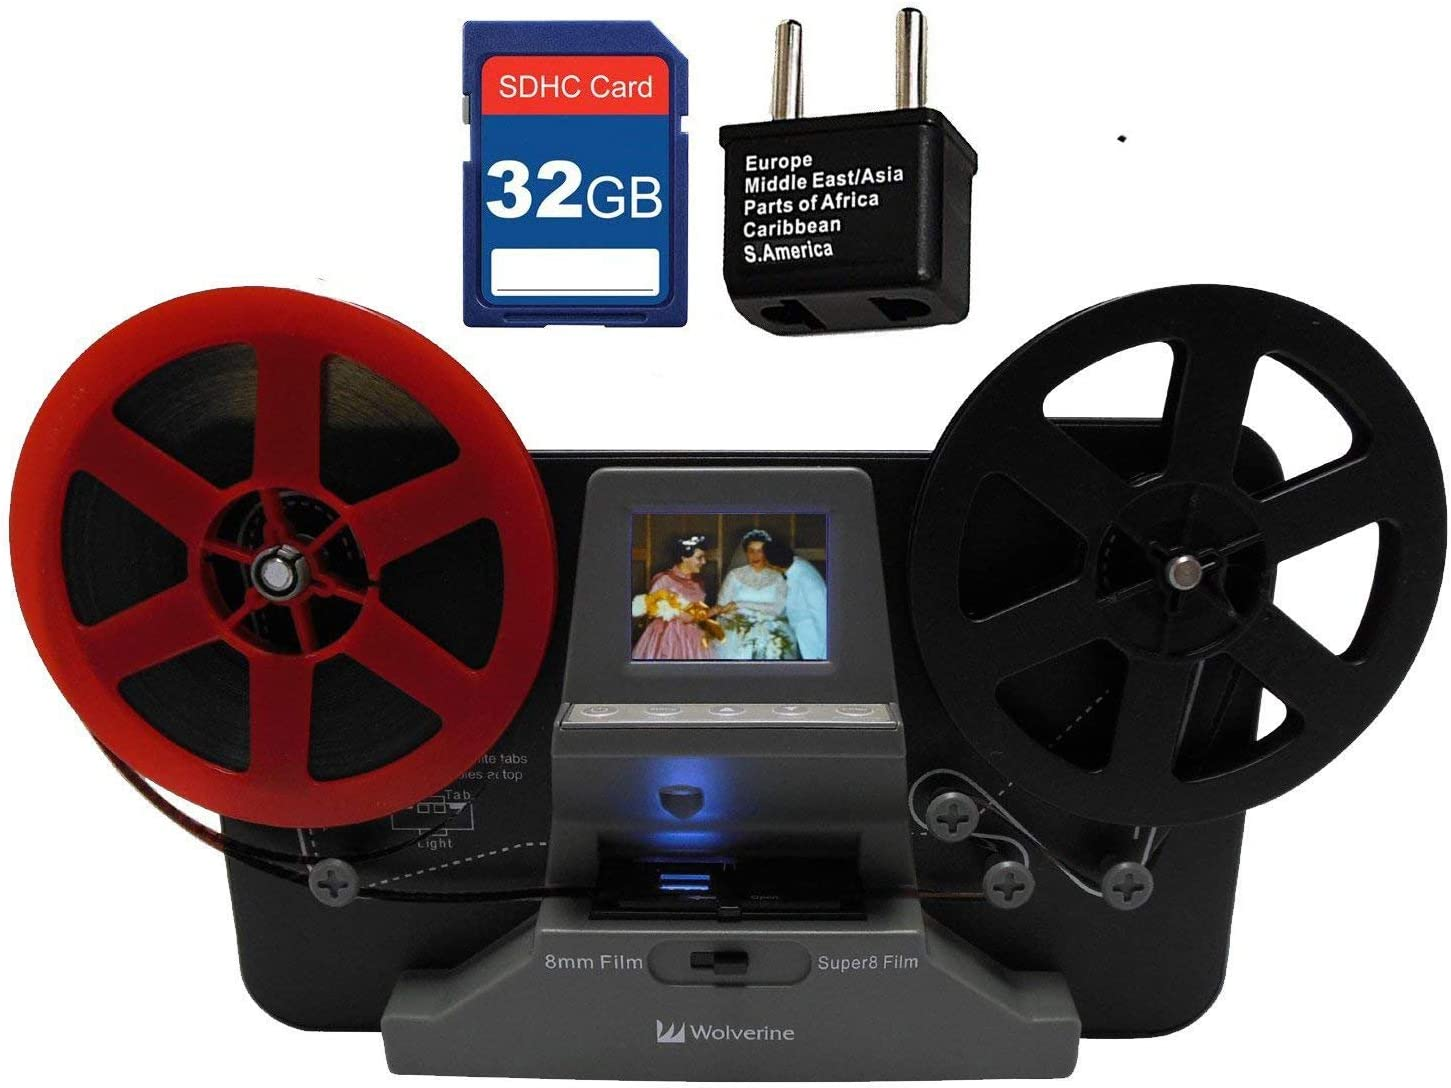 """Wolverine 8 mm & Super 8 Reels Movie Digitizer w/ 2.4"""" LCD (Film2Digital MovieMaker) Includes 32GB SD Memory Card & Worldwide 100-240V AC Adapter & International Two-Prong Round Pin Plug Adapter"""